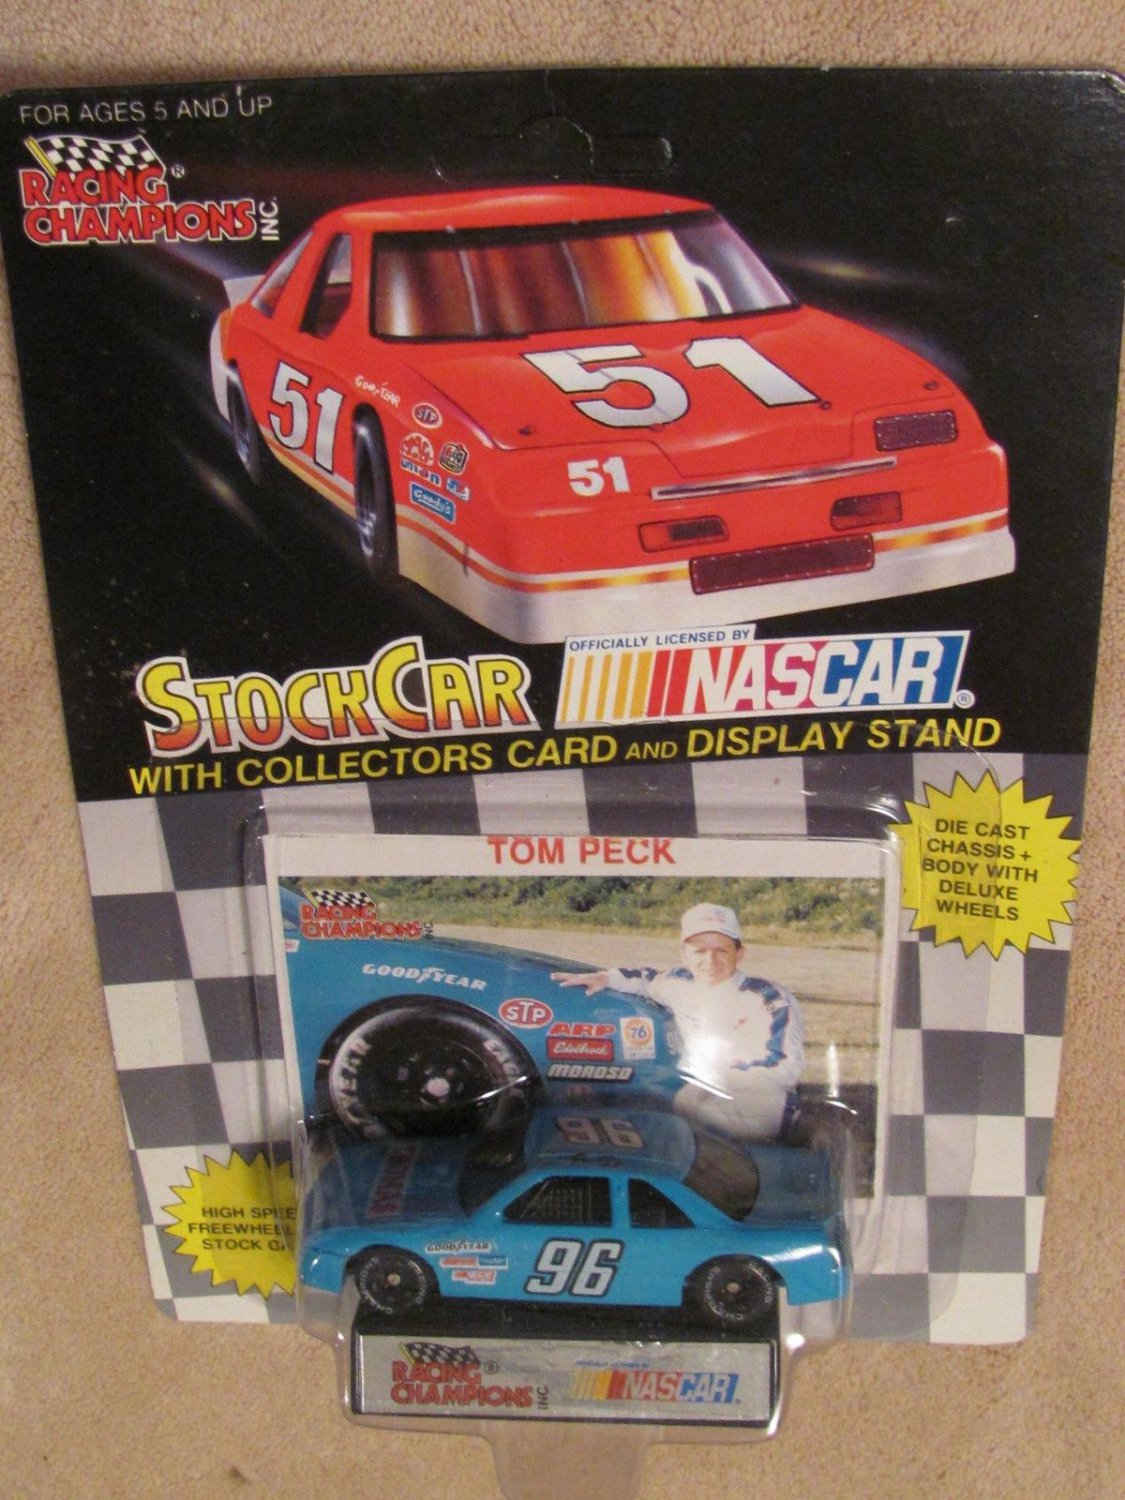 1991 NASCAR Racing Champions 1:64 TOM PECK #96 GOODYEAR STP